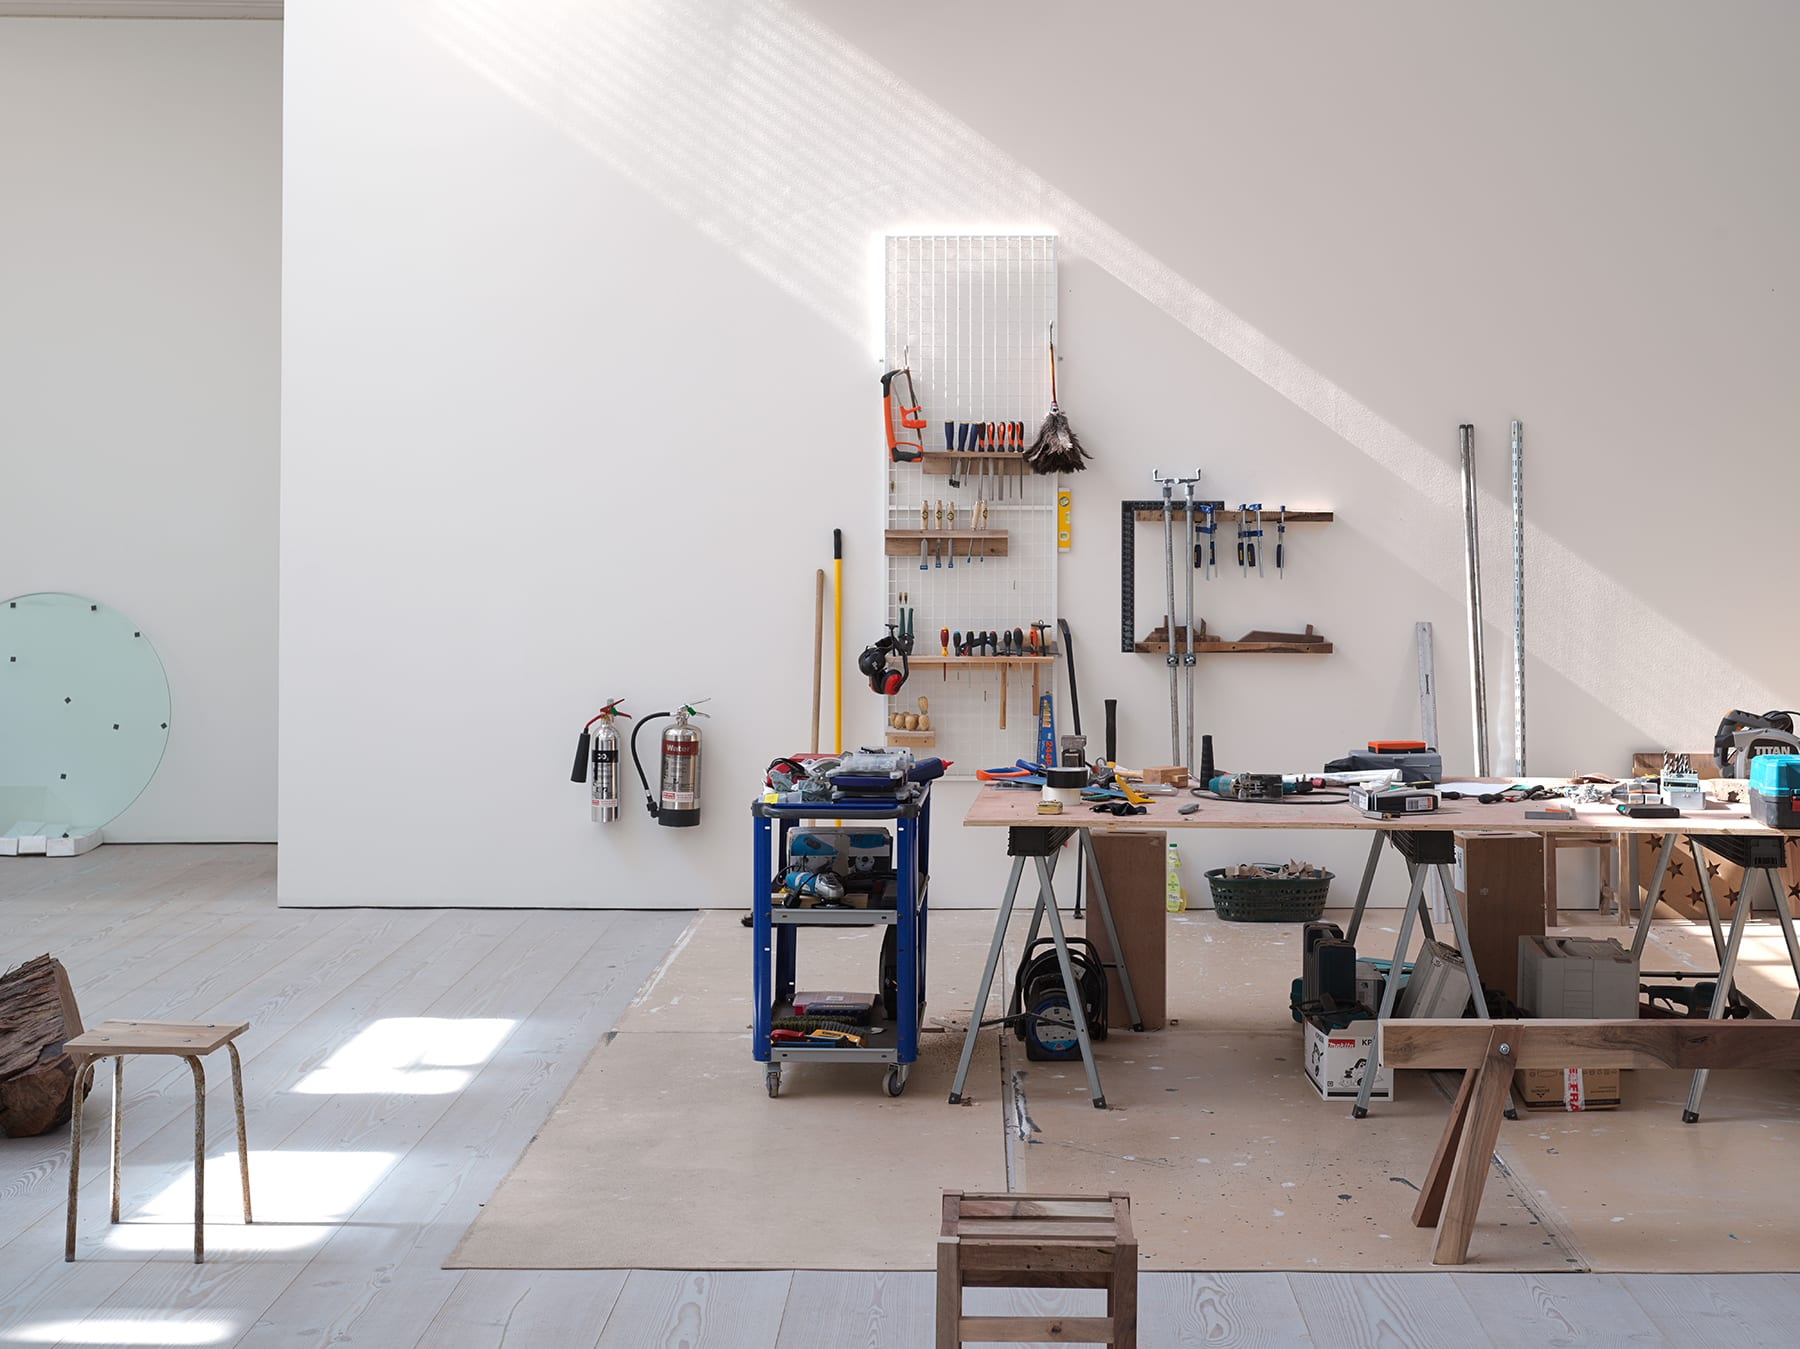 Gallery filled with tools and working benches.